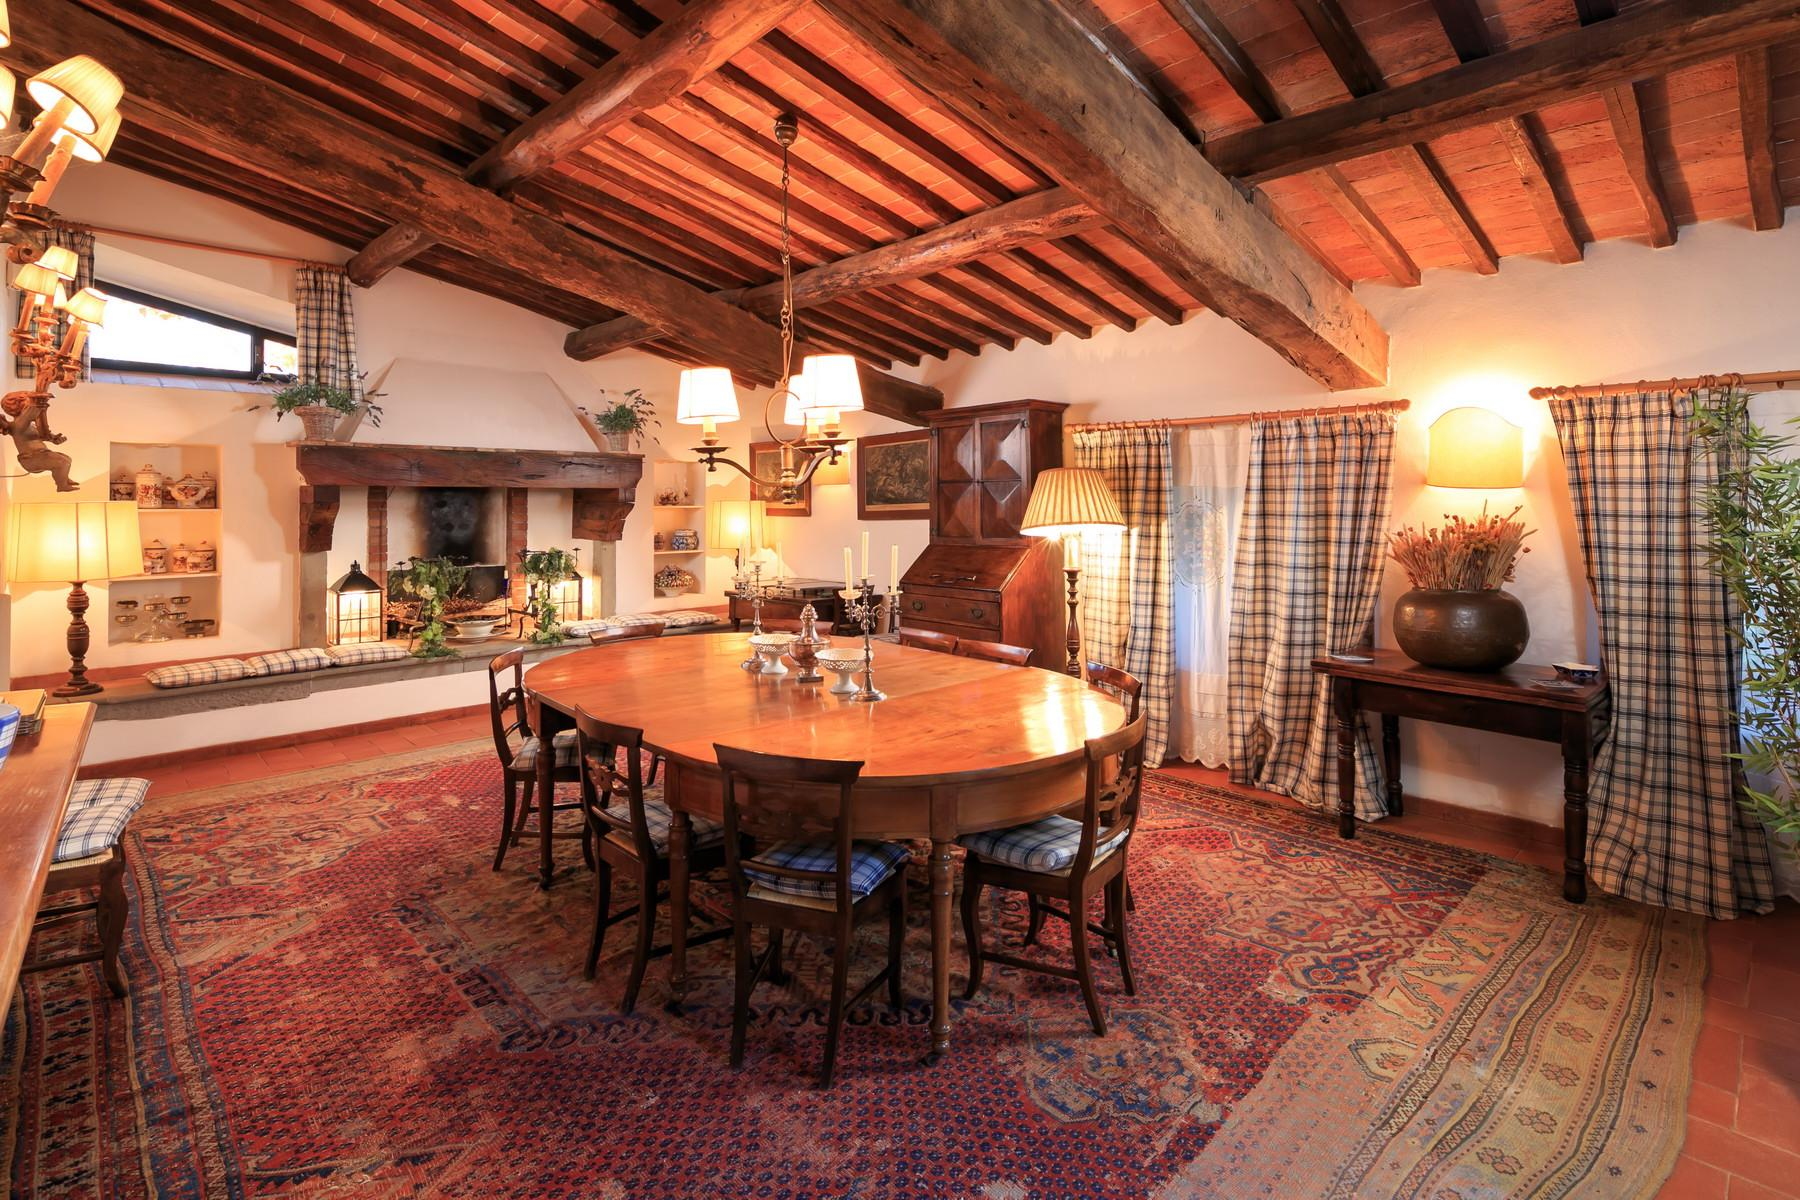 Wonderful farmhouse in the Chianti hills - 8